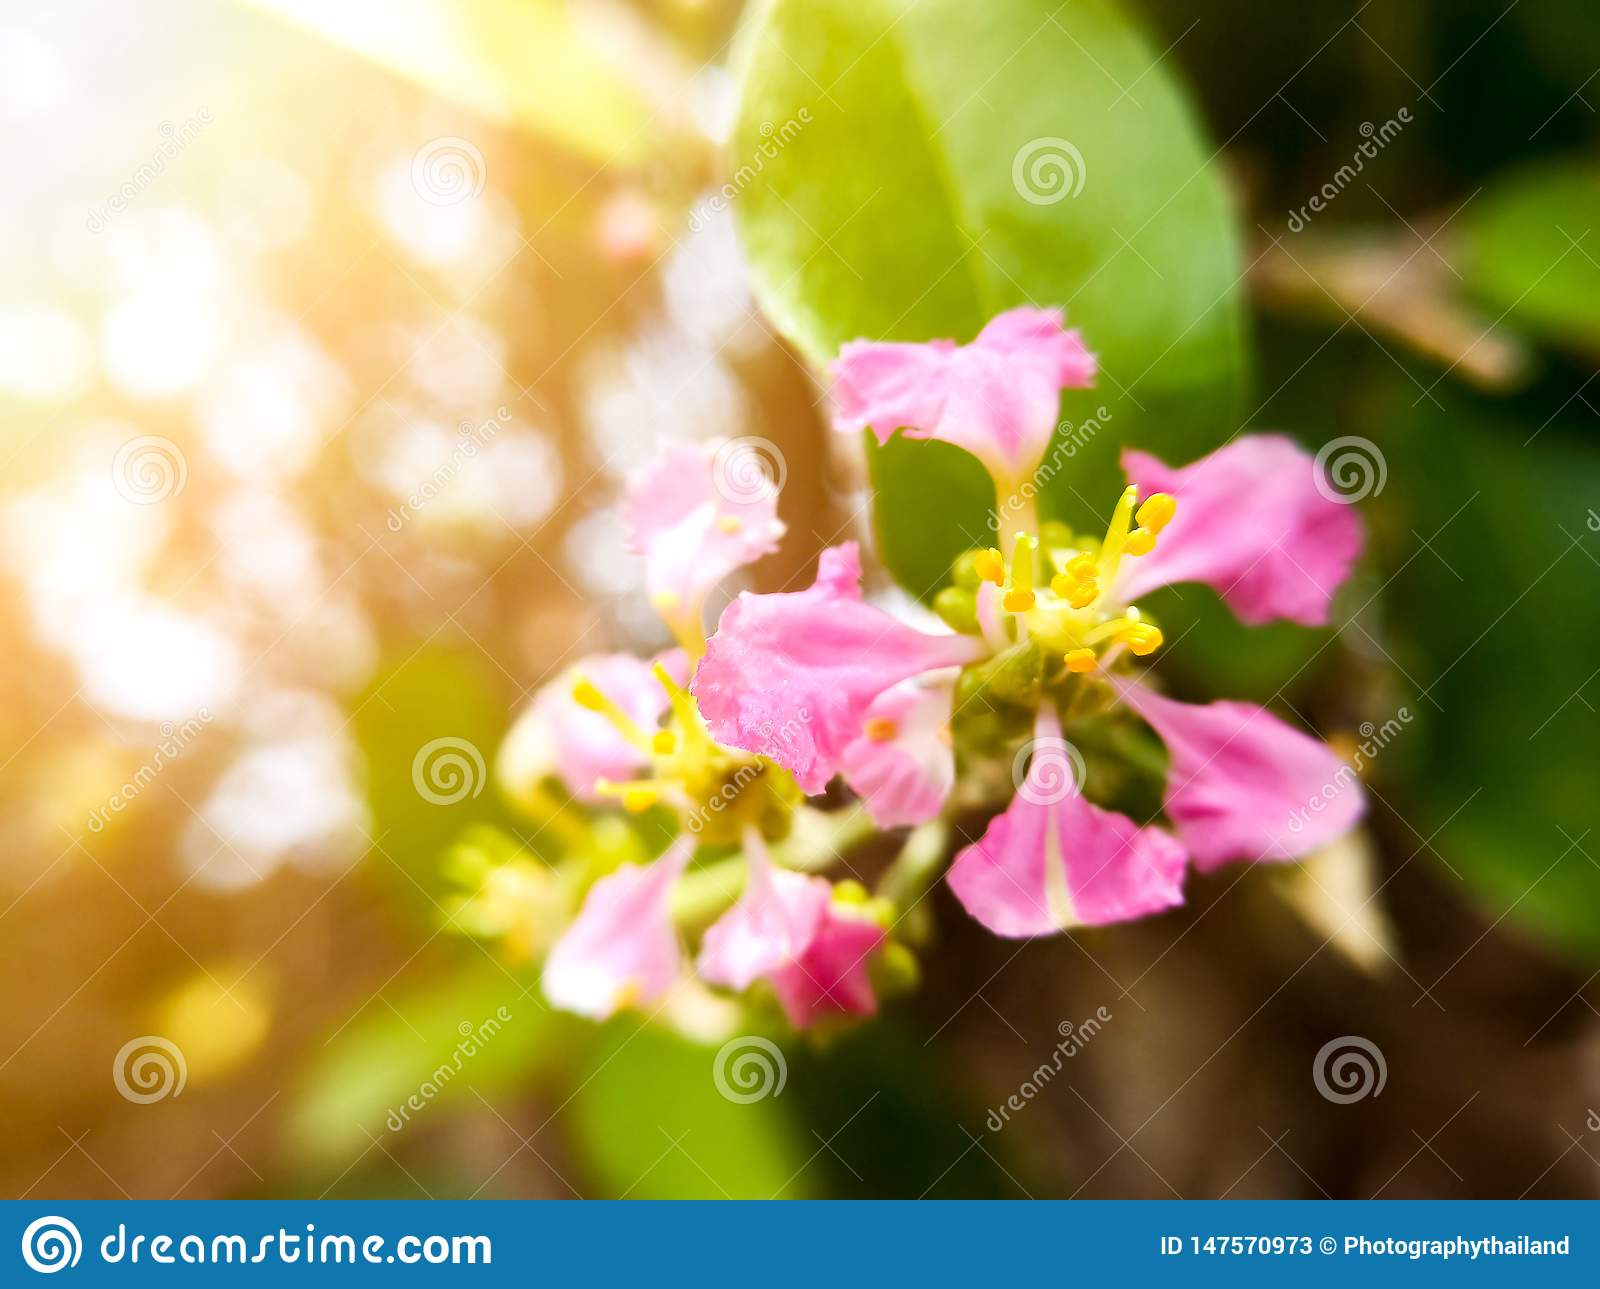 Selection soft focus on the yellow pollen of beautiful pink flowers. Pink flowers with bokeh nature light background.